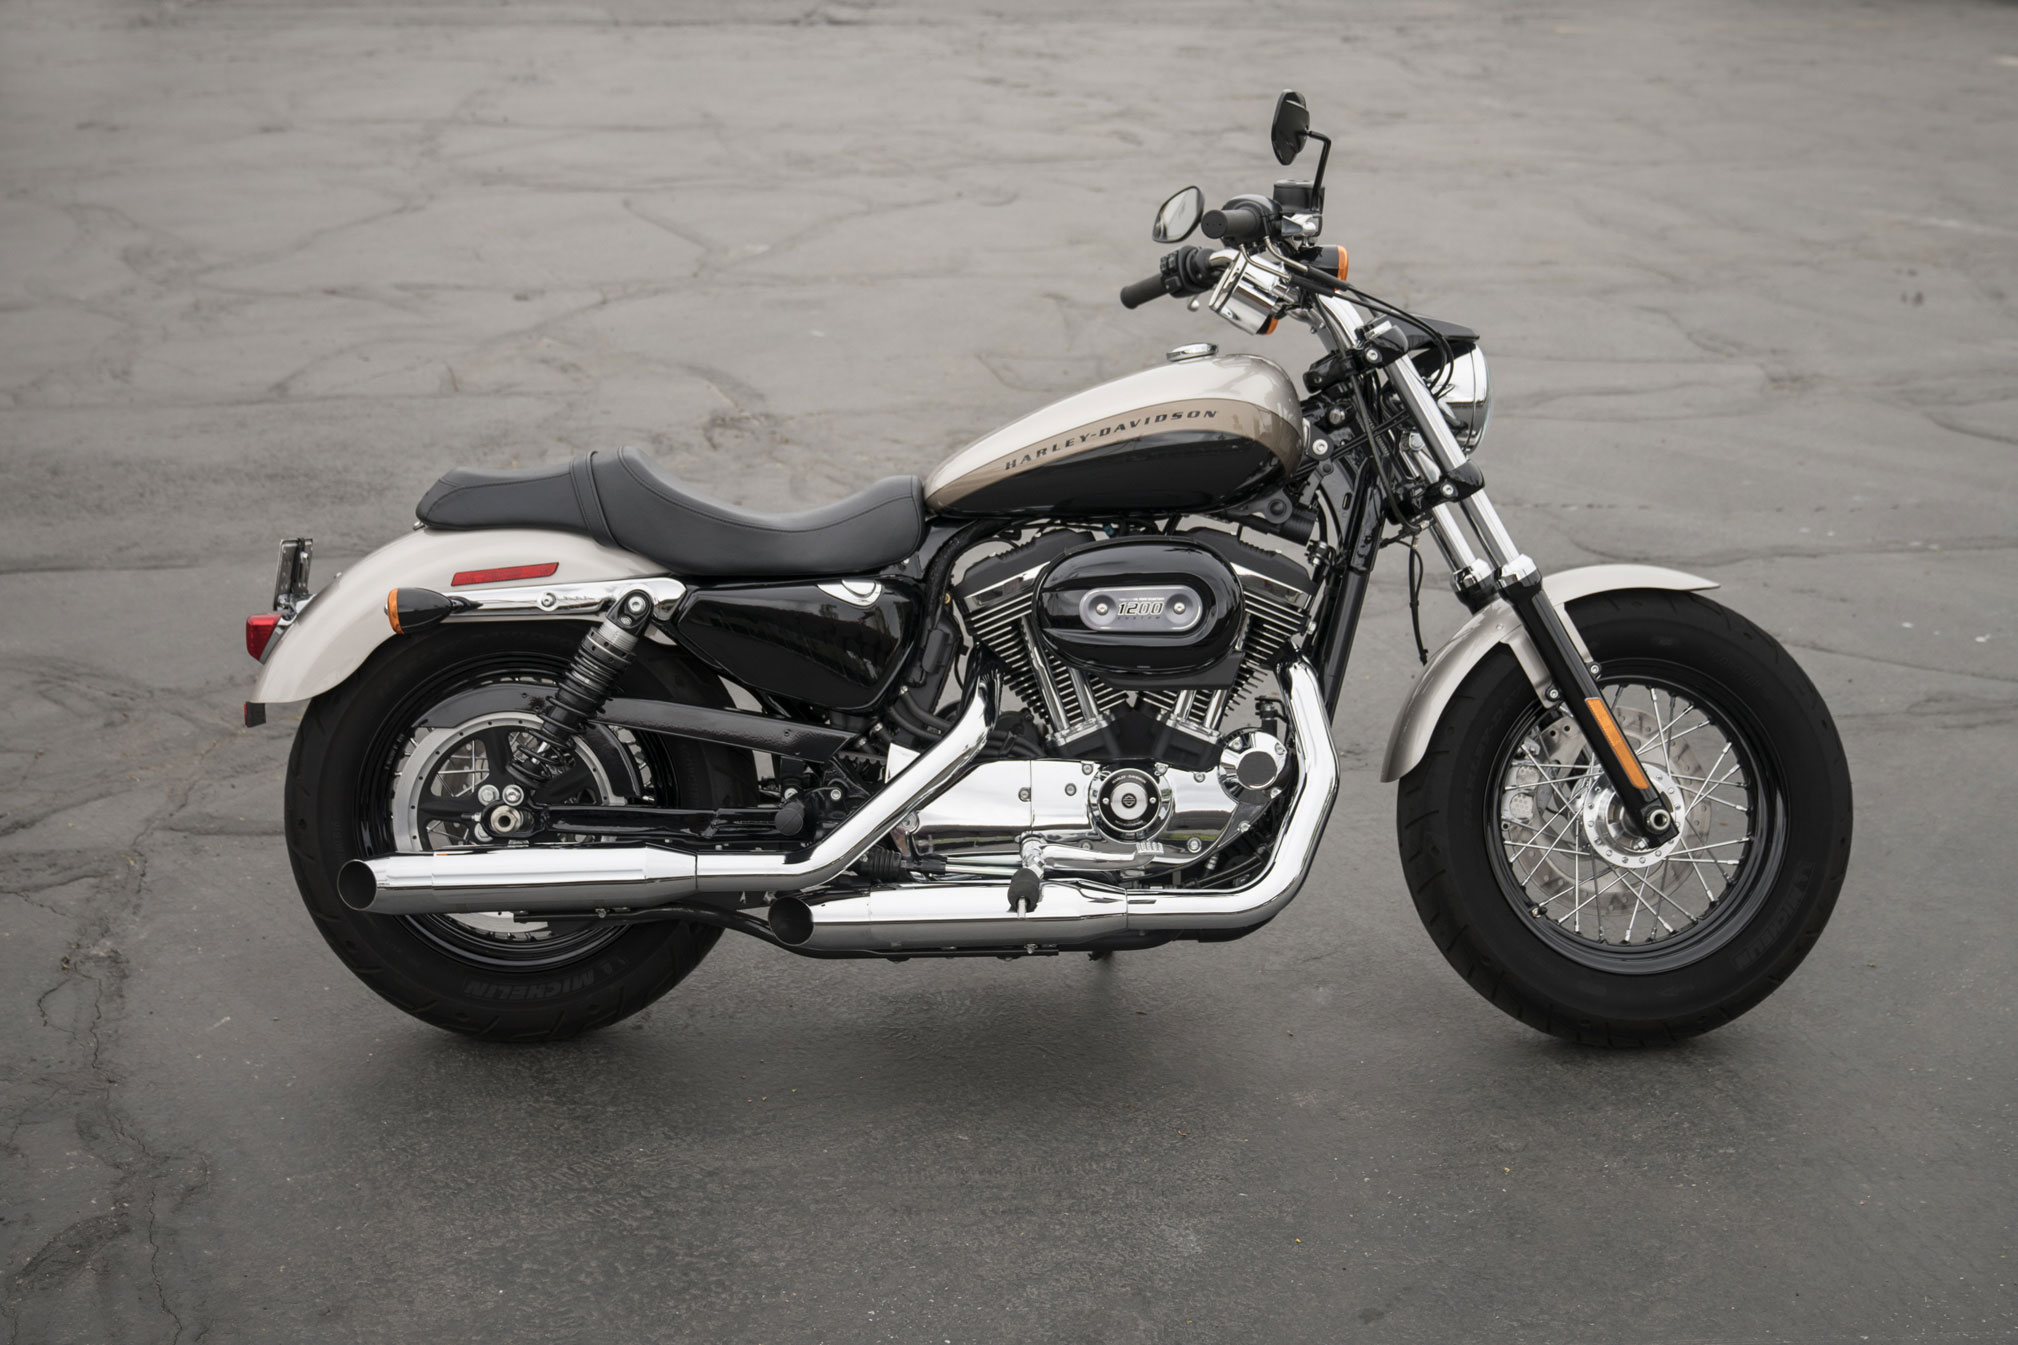 Harley-davidson custom photo - 6